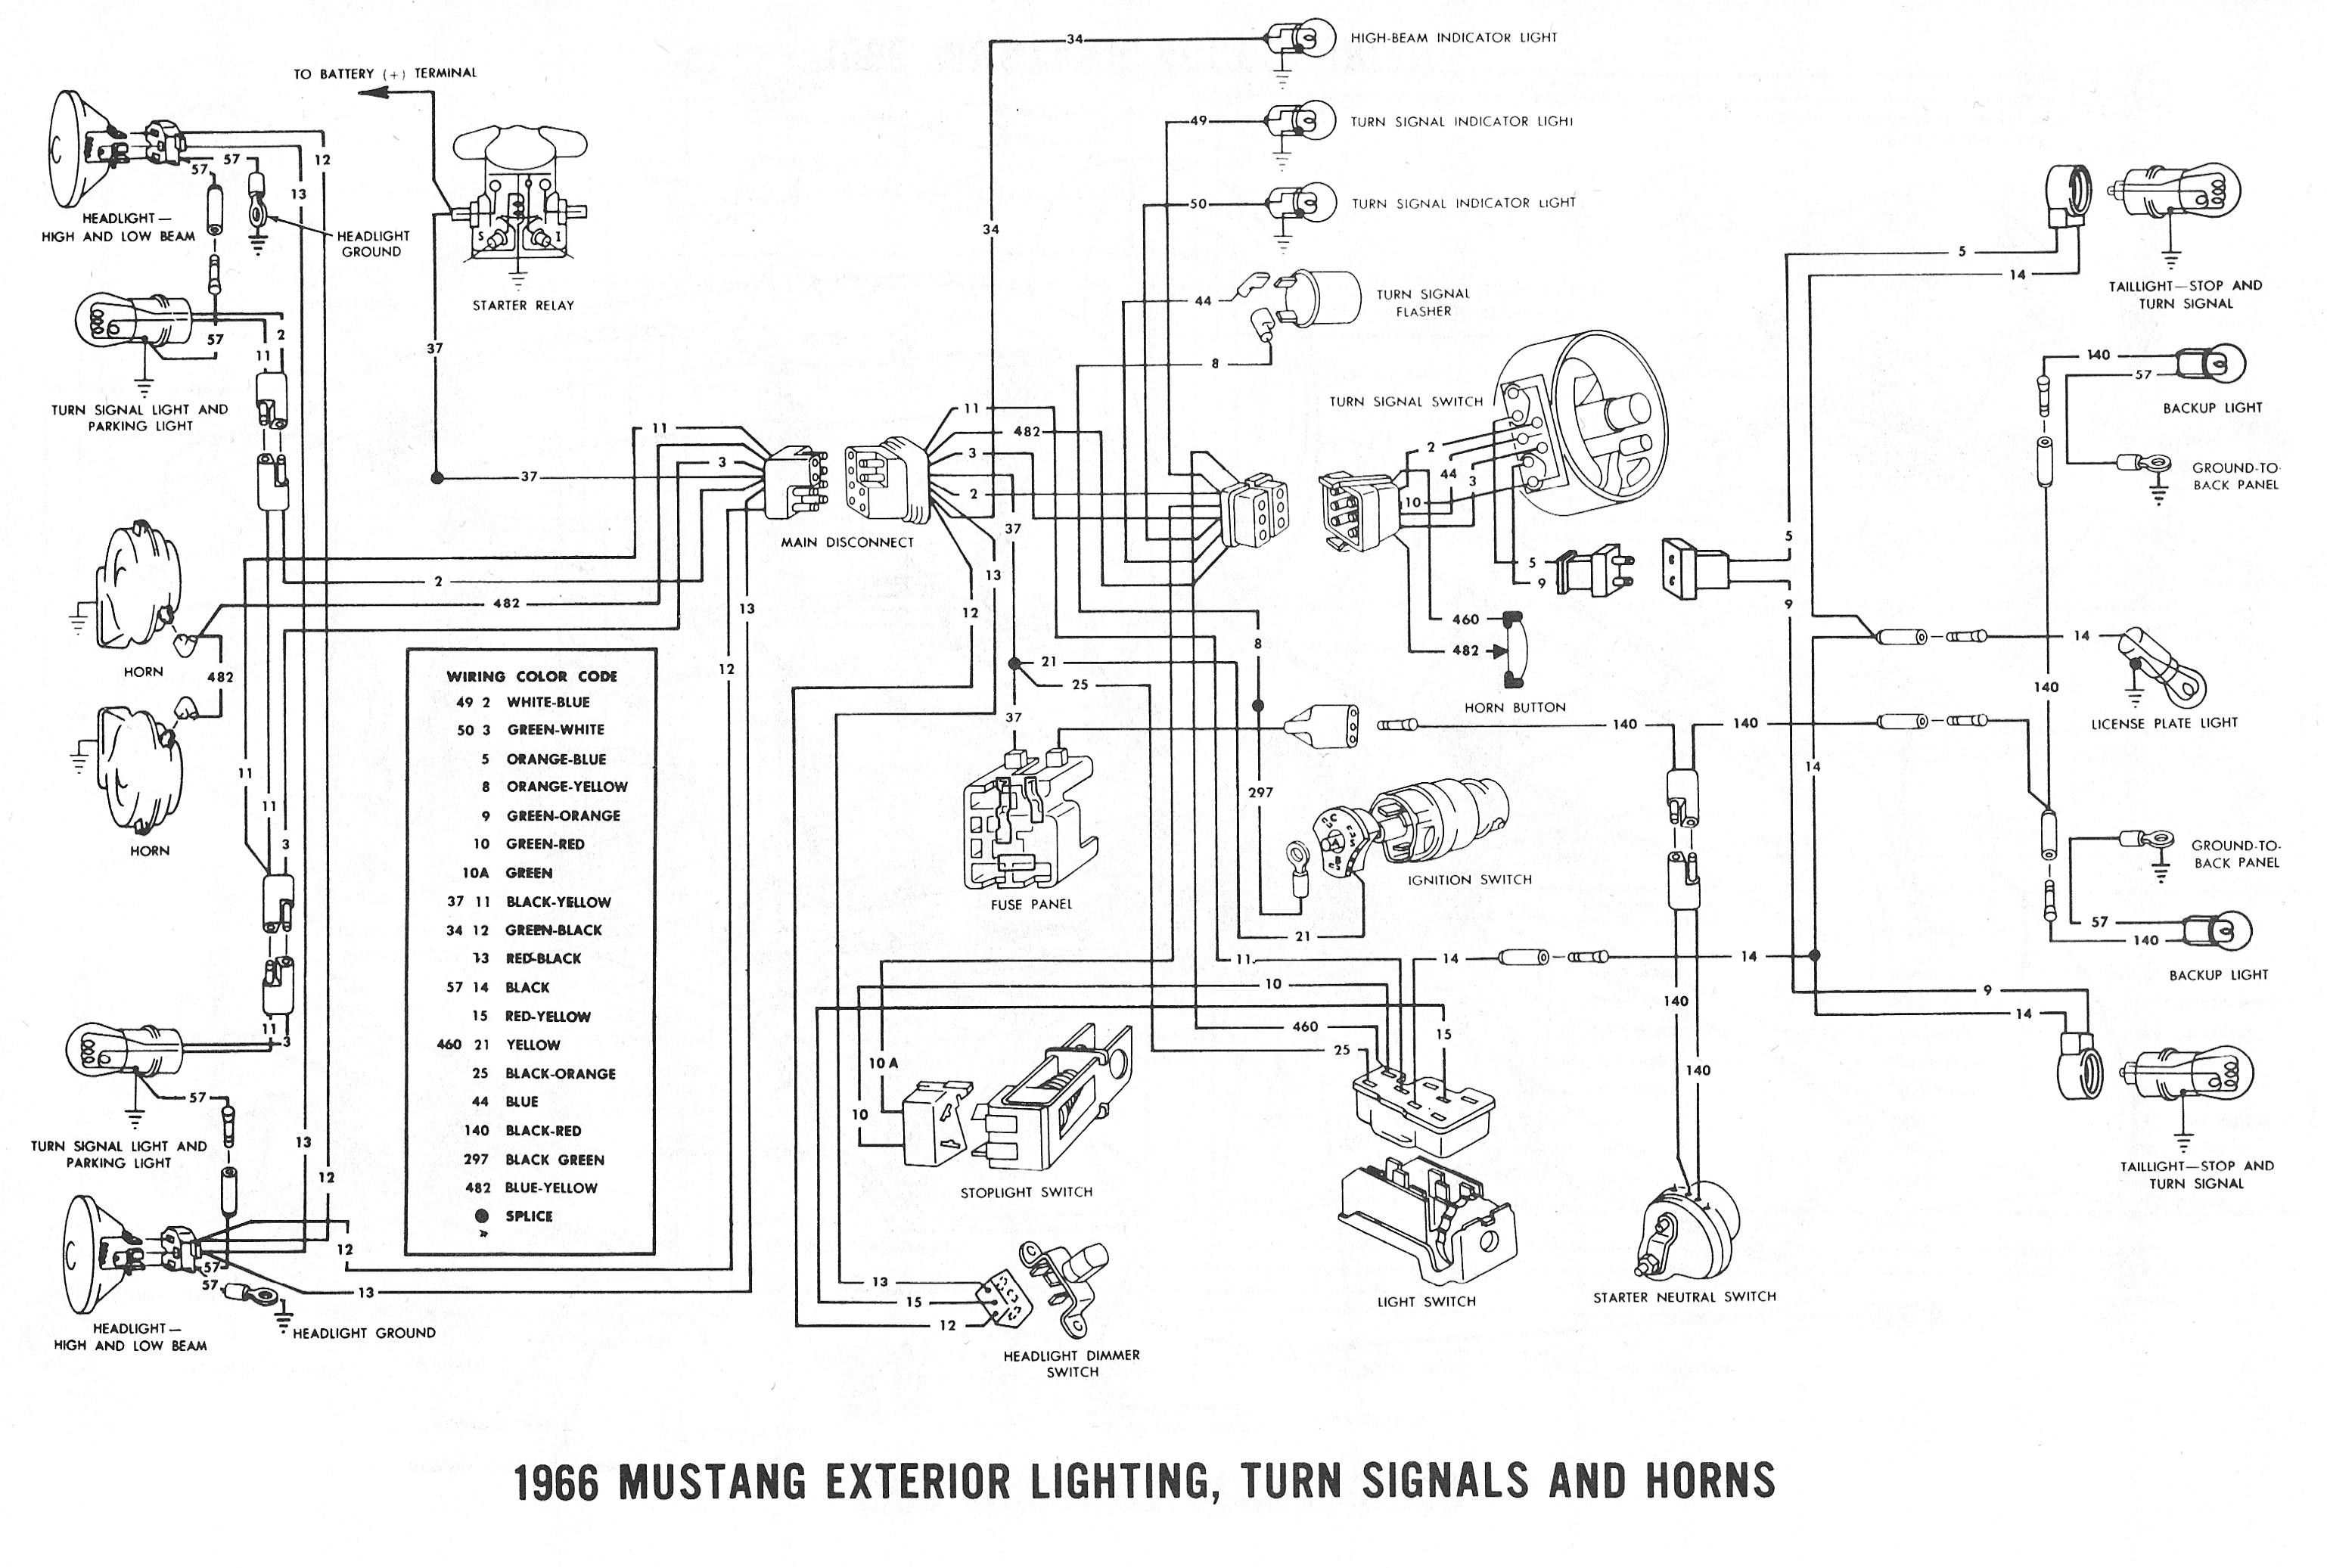 1966 ford f100 wiring schematic simple wiring diagram rh david huggett co  uk 66 Mustang Wiring